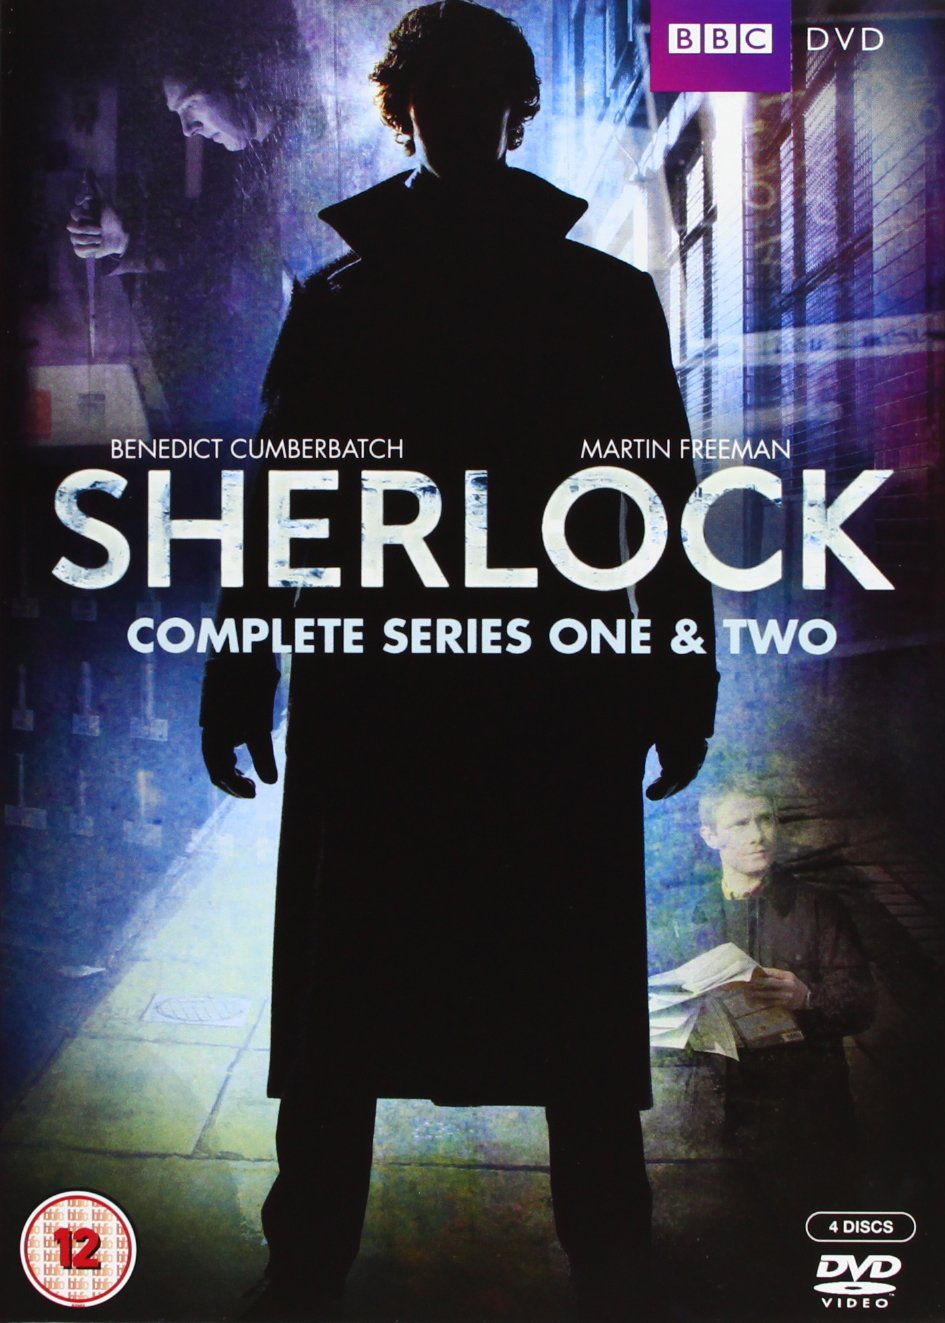 Cheap DVd.Sherlock Series 1 & 2.jpg